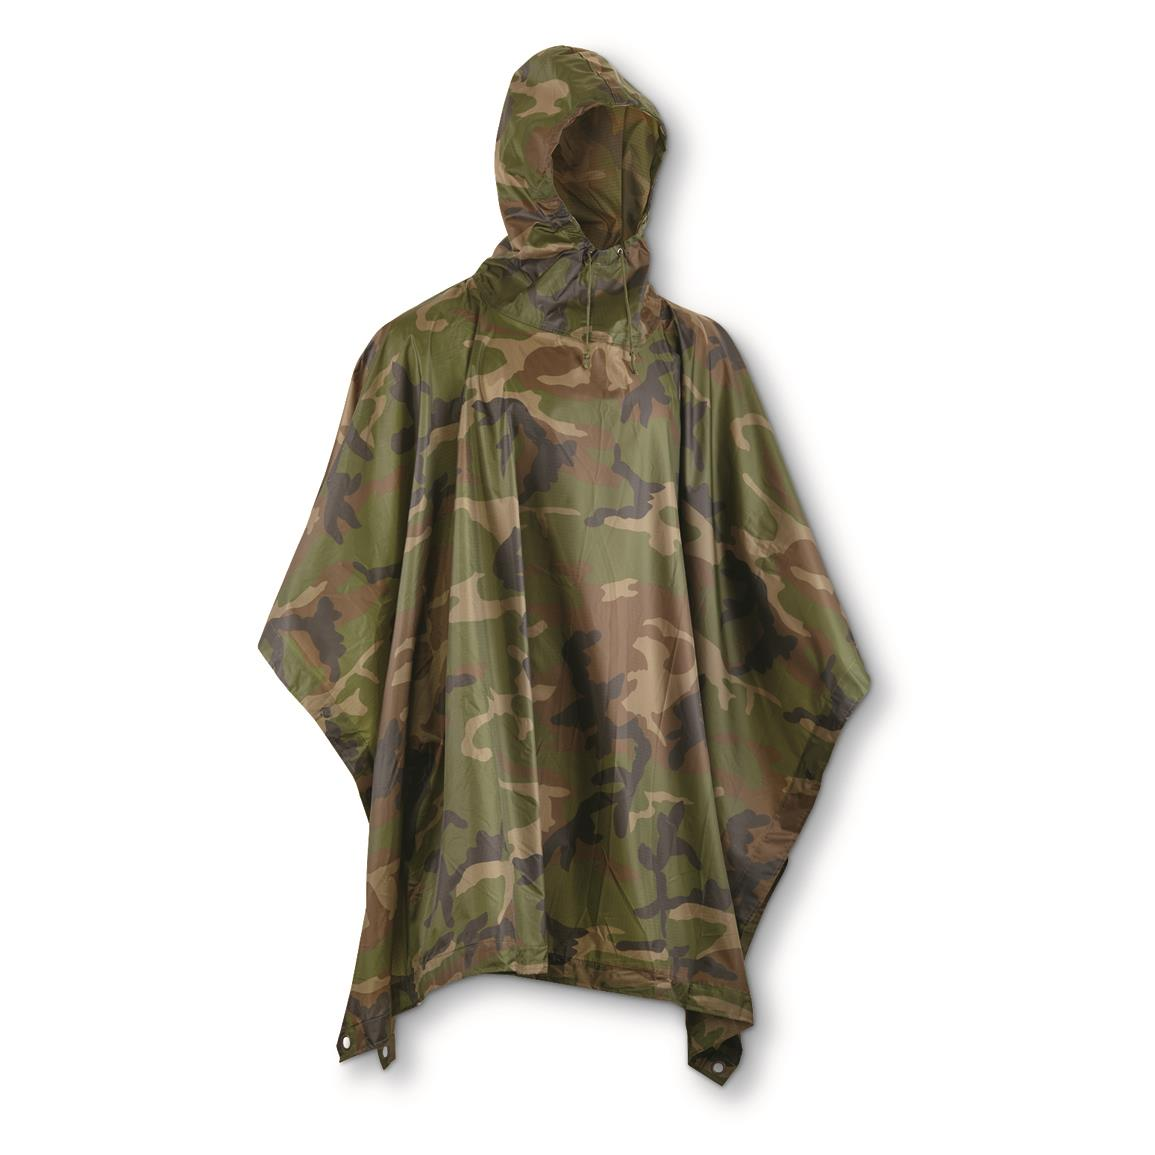 Angolan Military Surplus Heavyweight Poncho with Carry Bag, New